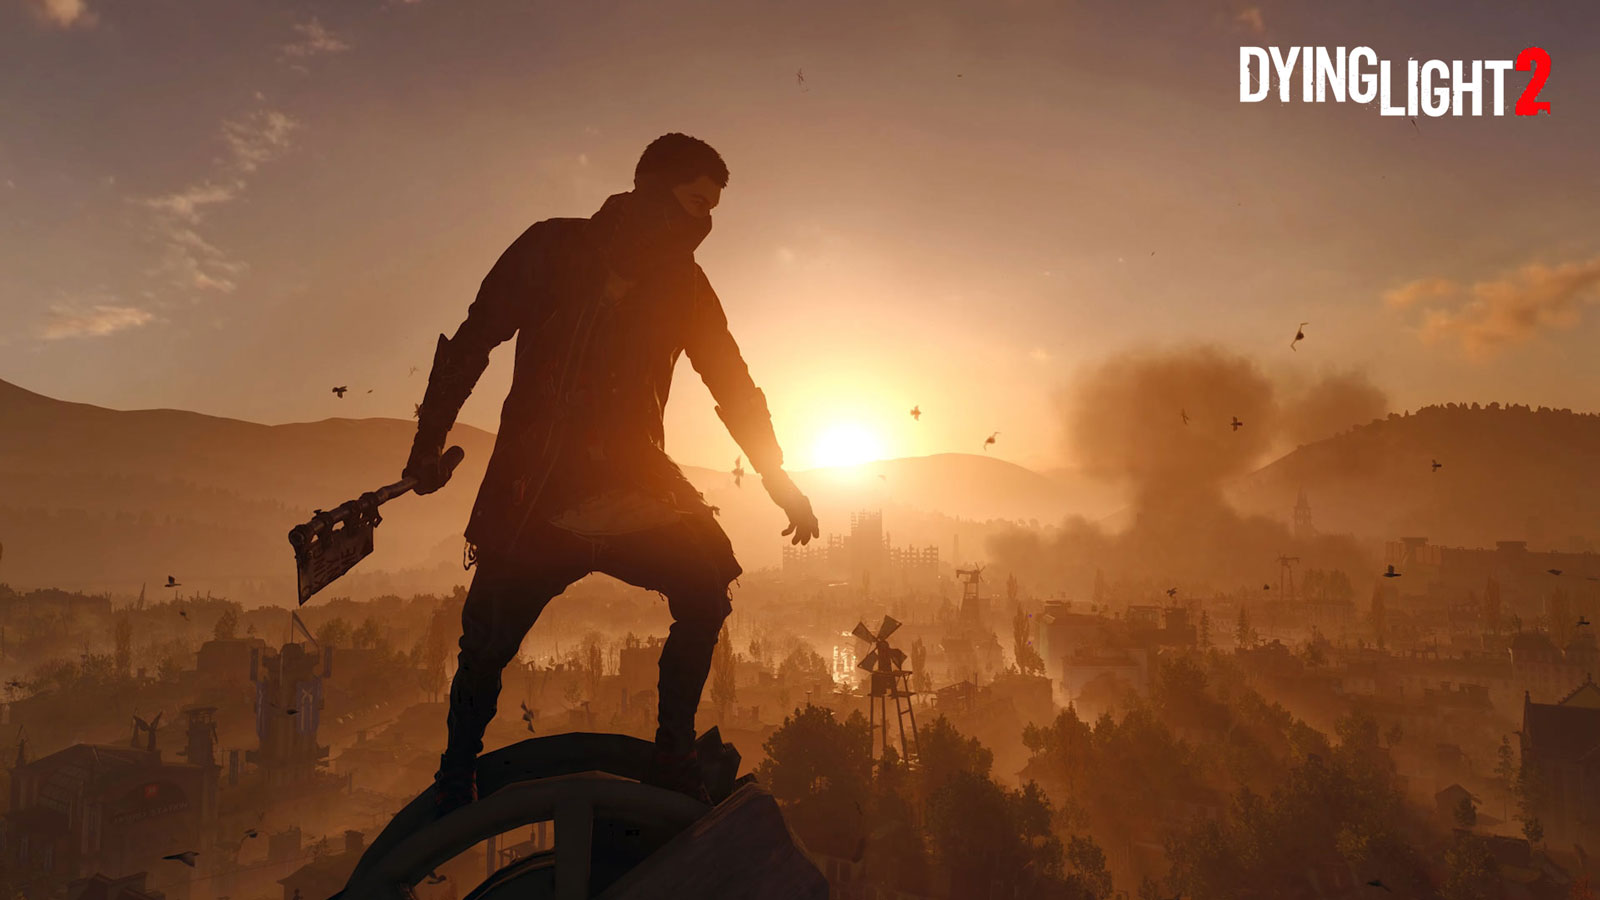 Free Dying Light 2 Wallpaper in 1600x900